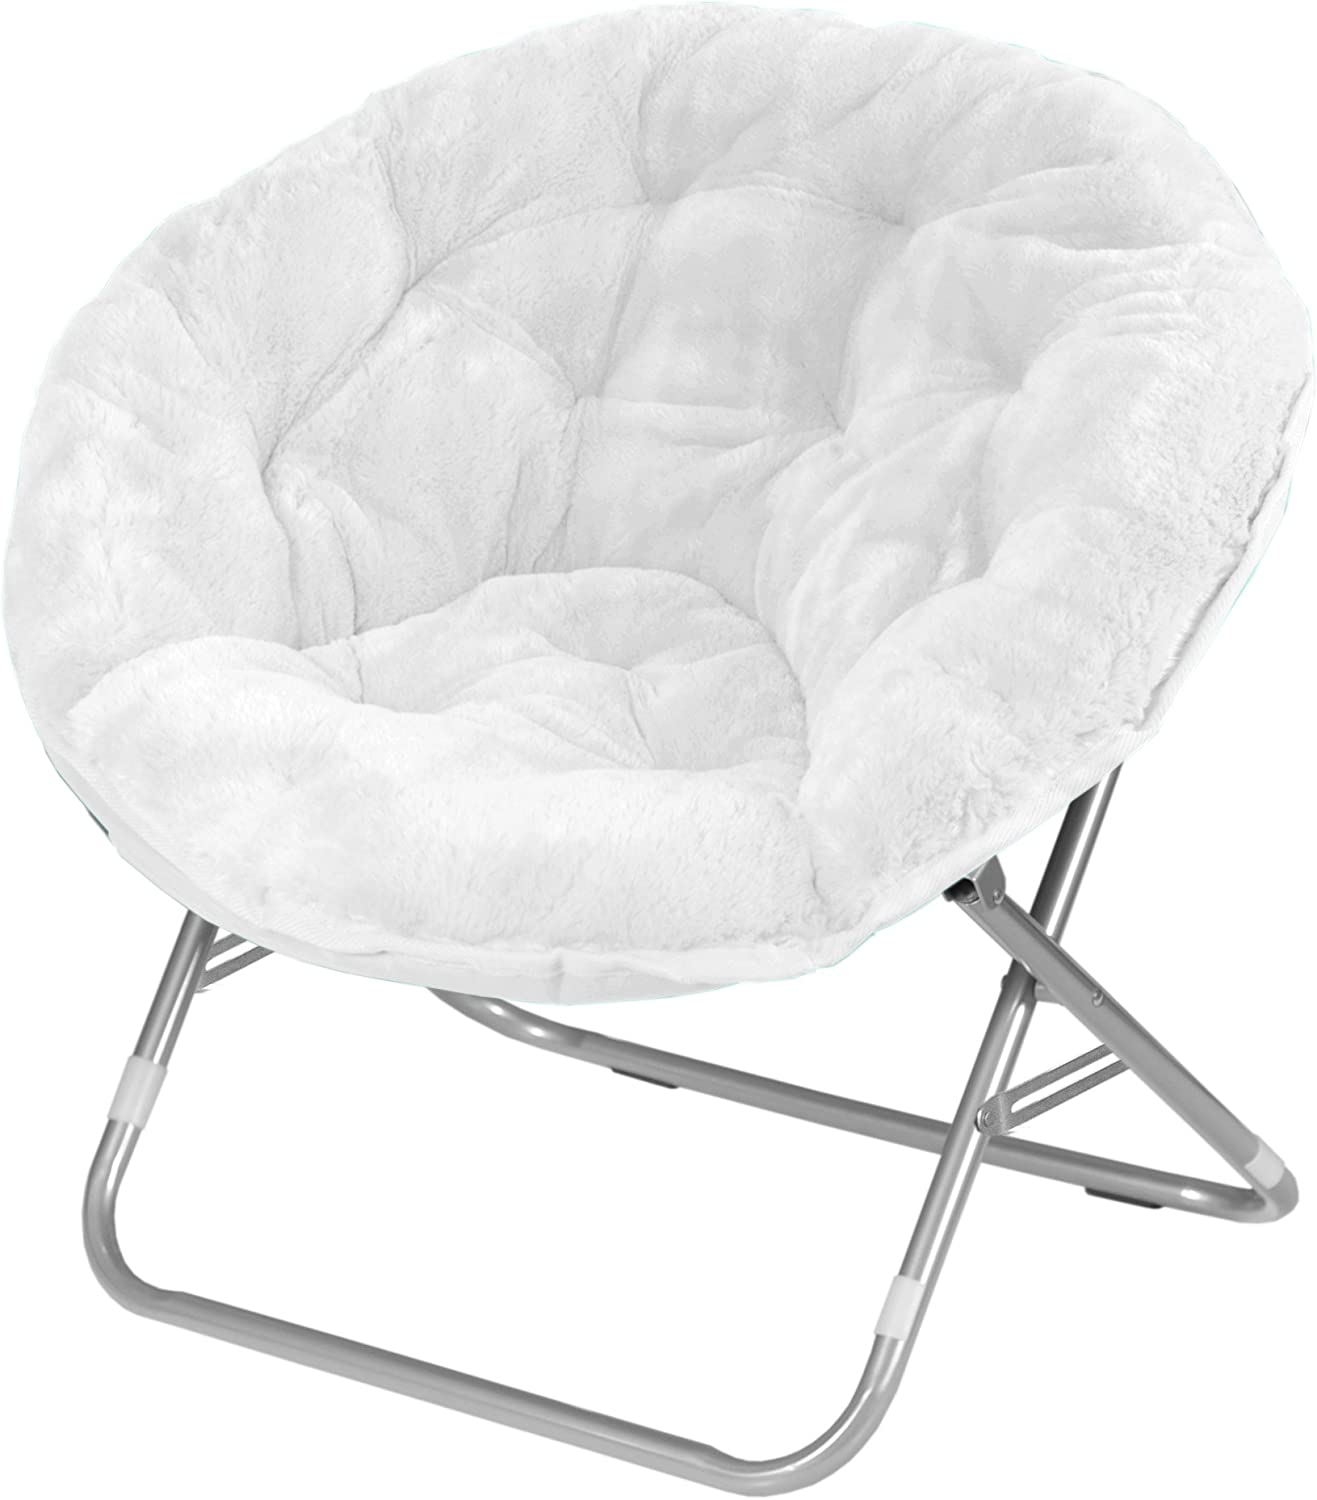 Urban Shop Faux Fur Saucer Chair, White